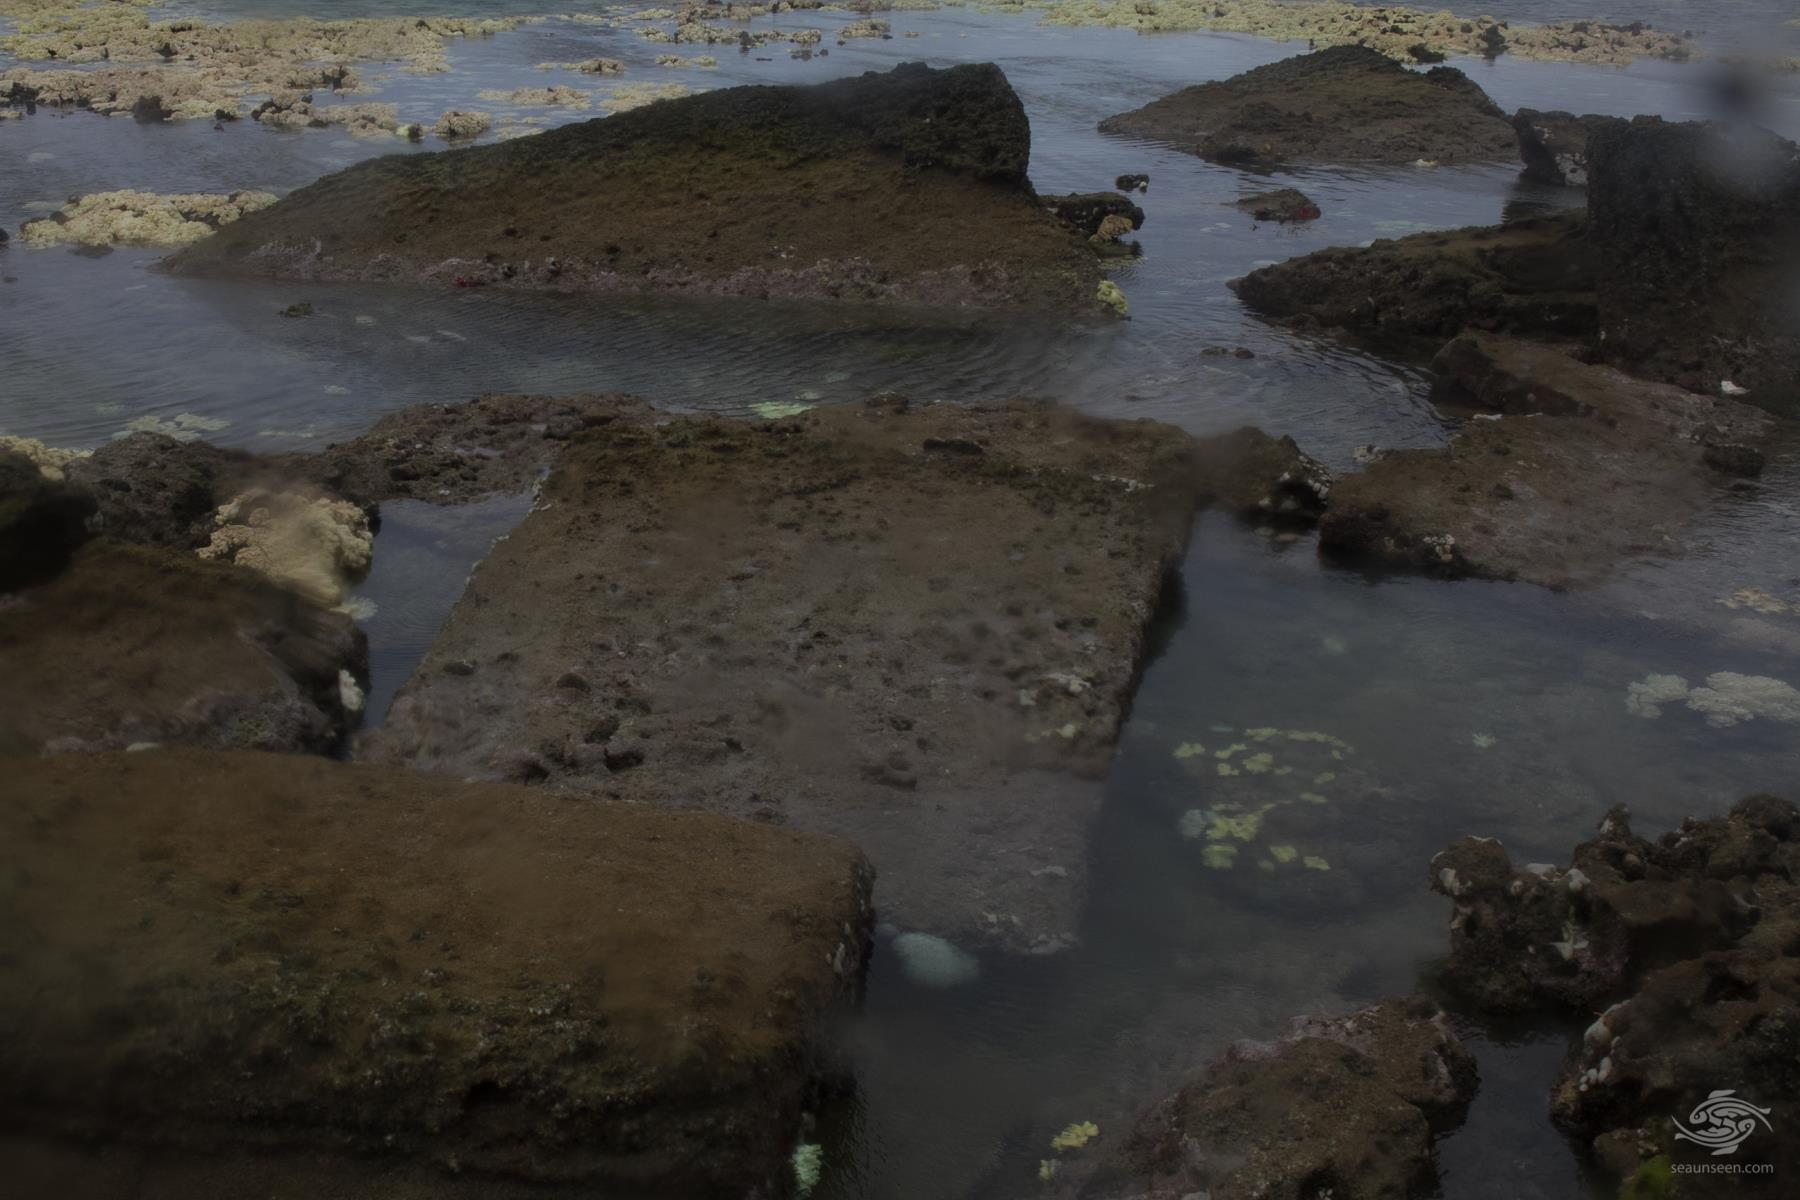 2,000-year-old lost sunken city of Rhapta found in Tanzania, underwater city discovered in Tanzania, tanzania underwater city, tanzania sunken city,rhapta discovery, sunken city rhapka discovered tanzania, underwater city tanzania, underwater city tanzania discovery